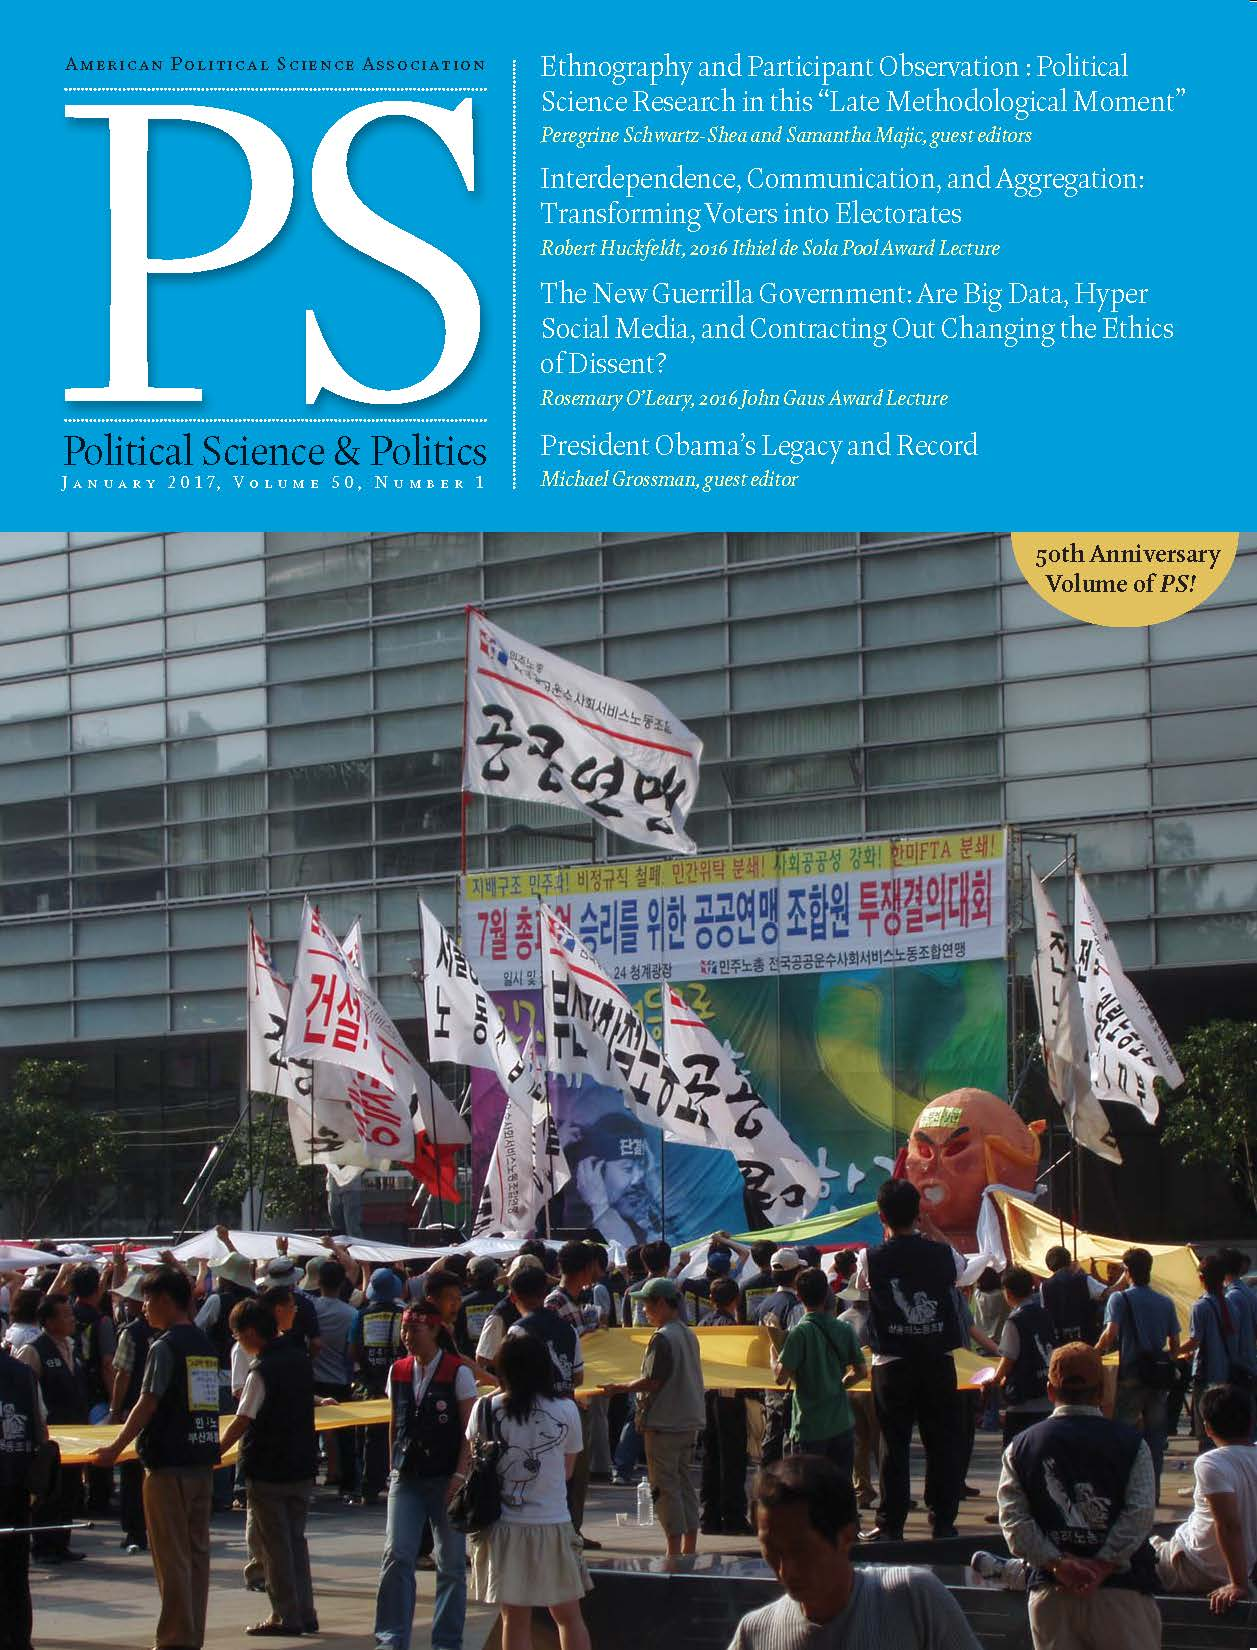 portals apsa files publications apsastylemanual.